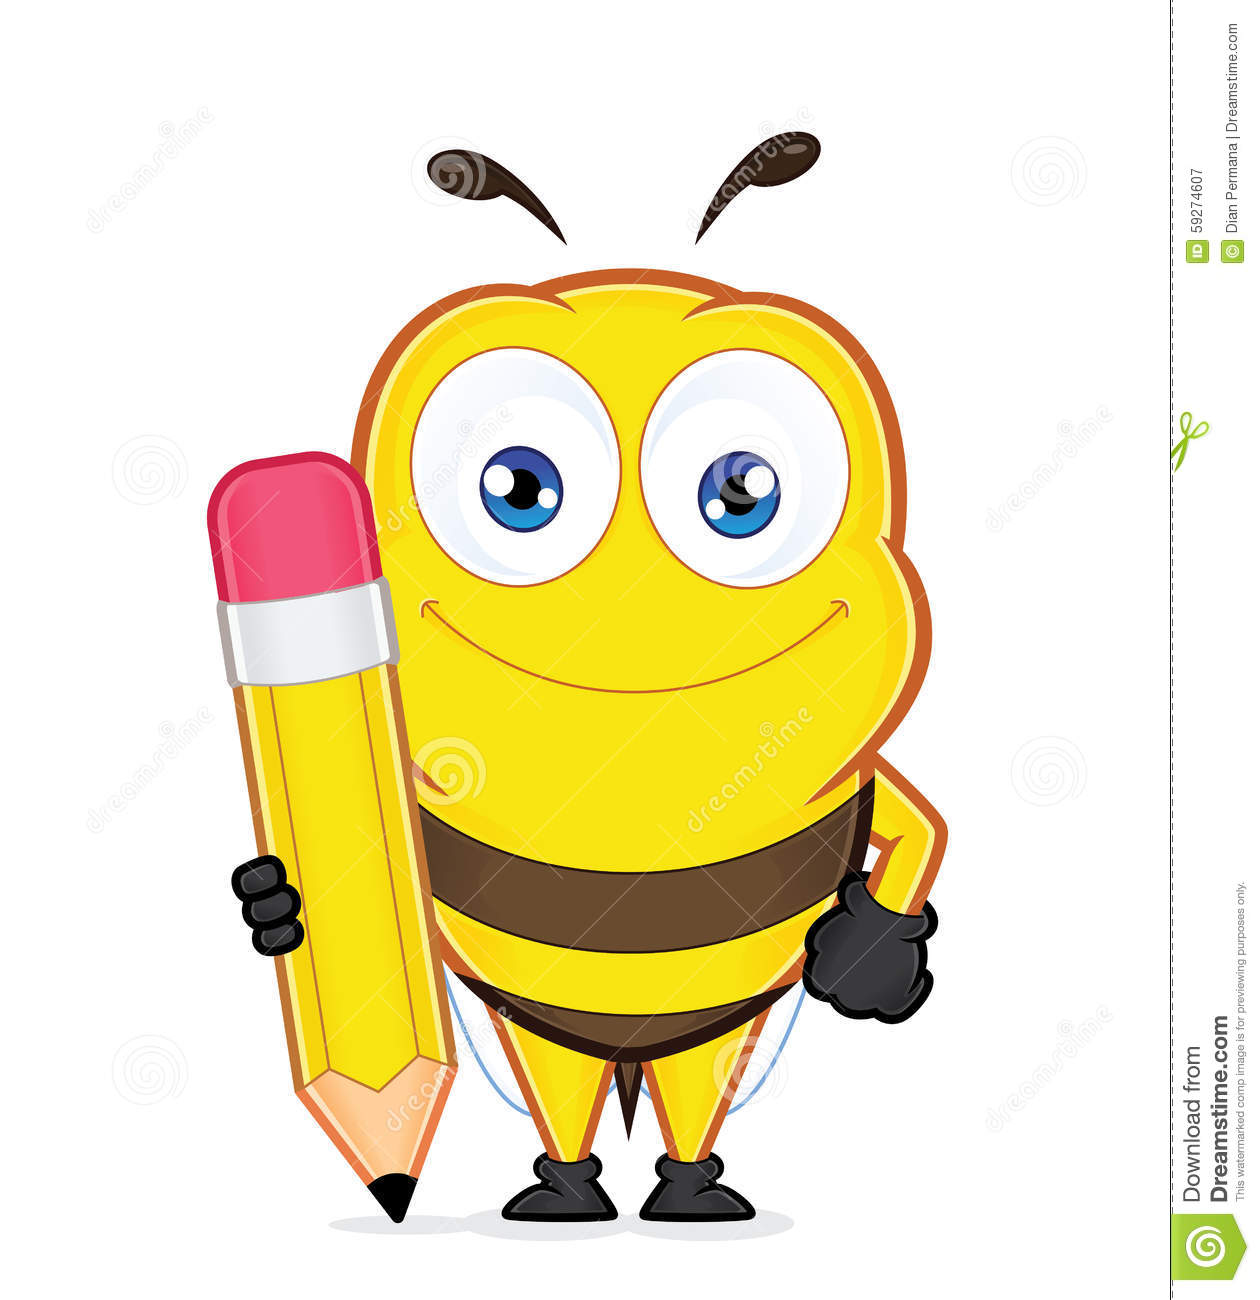 hight resolution of bee holding a pencil